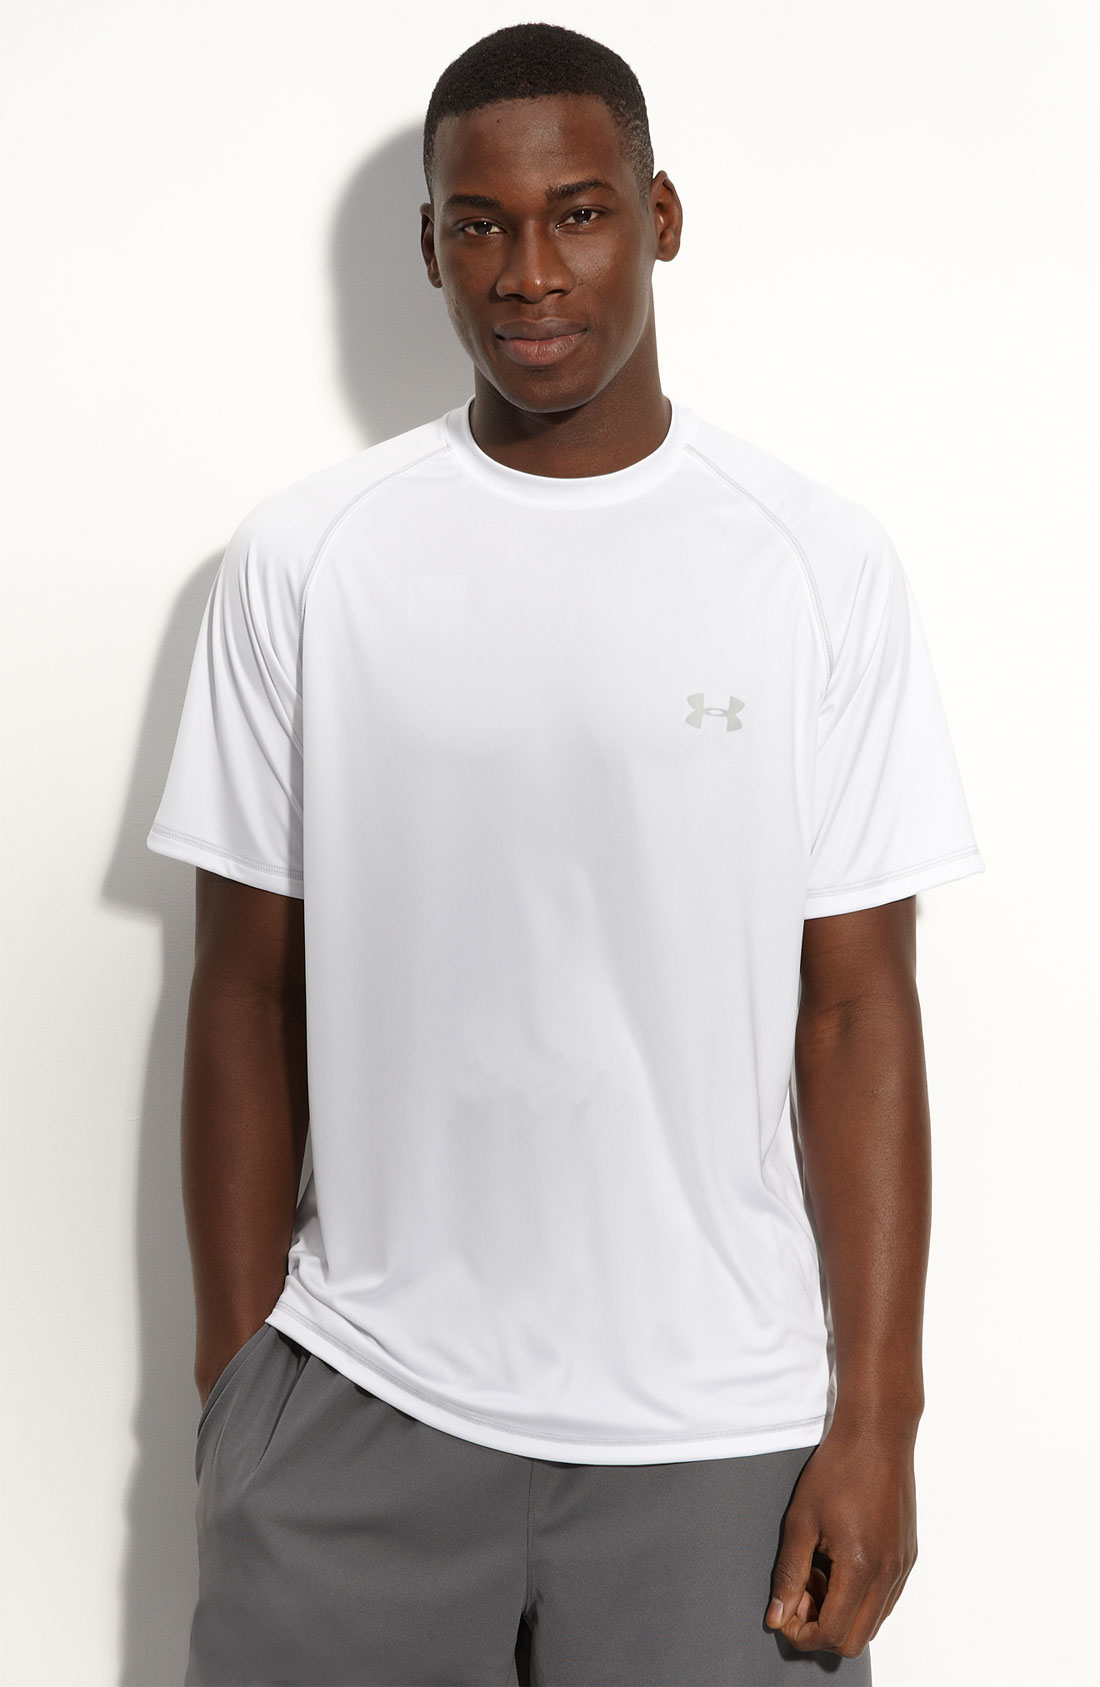 Under armour 4 bottle heatgear uv protection t shirt in for Under armour heatgear white shirt